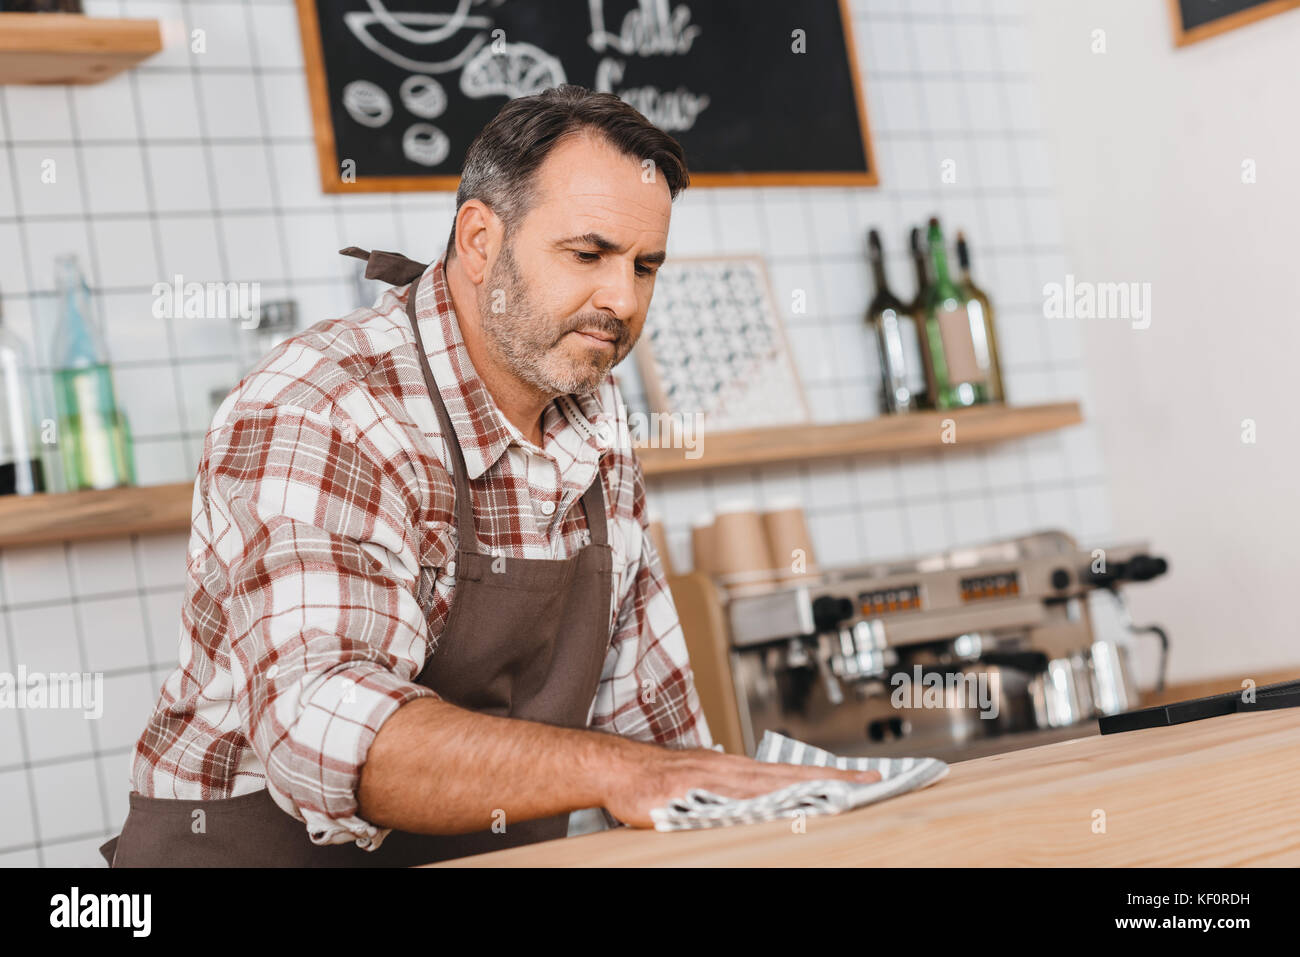 bartender wiping bar counter - Stock Image